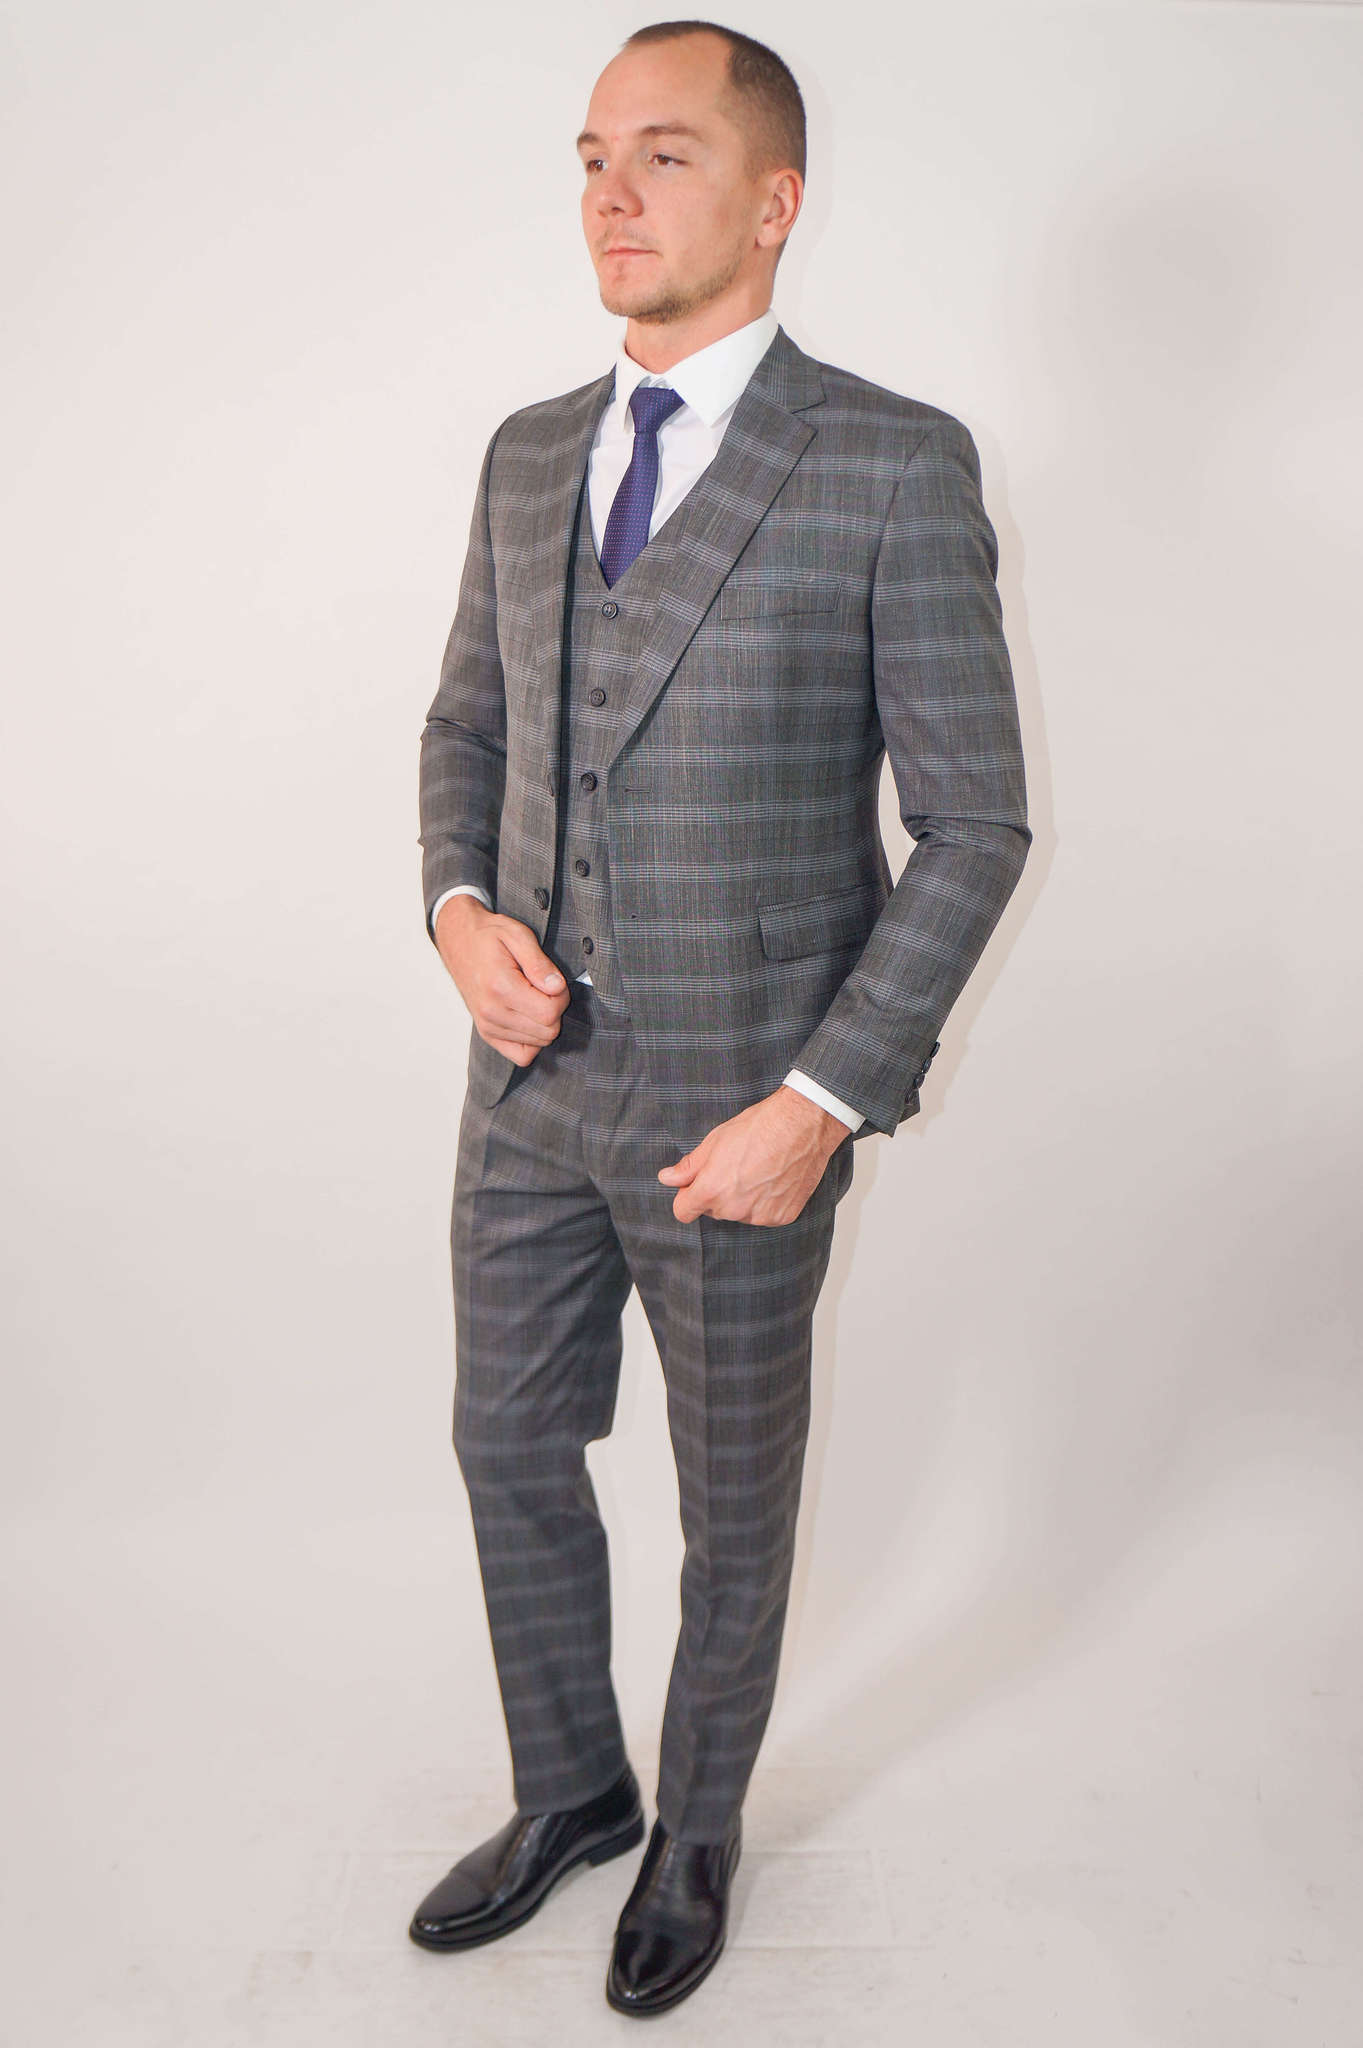 Костюмы Slim fit ANTONIO ROSSI / Костюм - тройка slim fit DSC02424.jpg